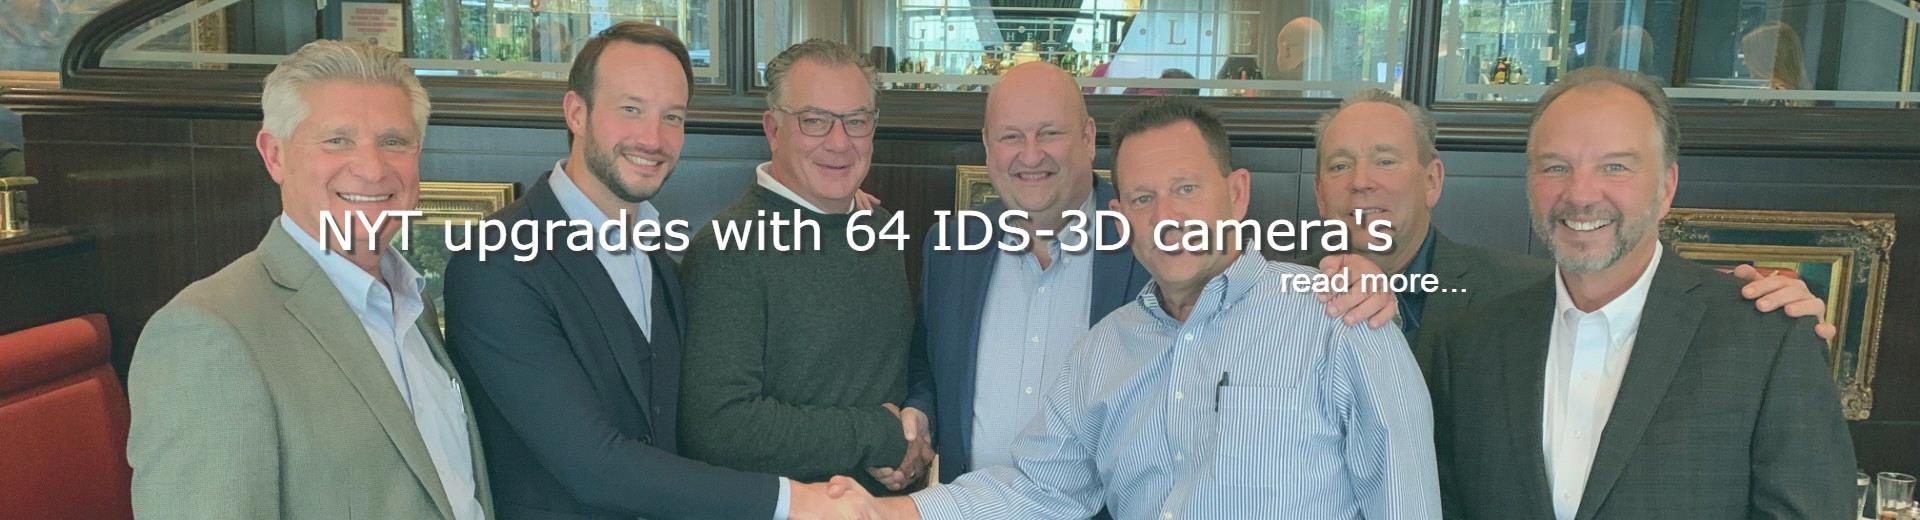 NYT upgrades with 64 IDS-3D camera's